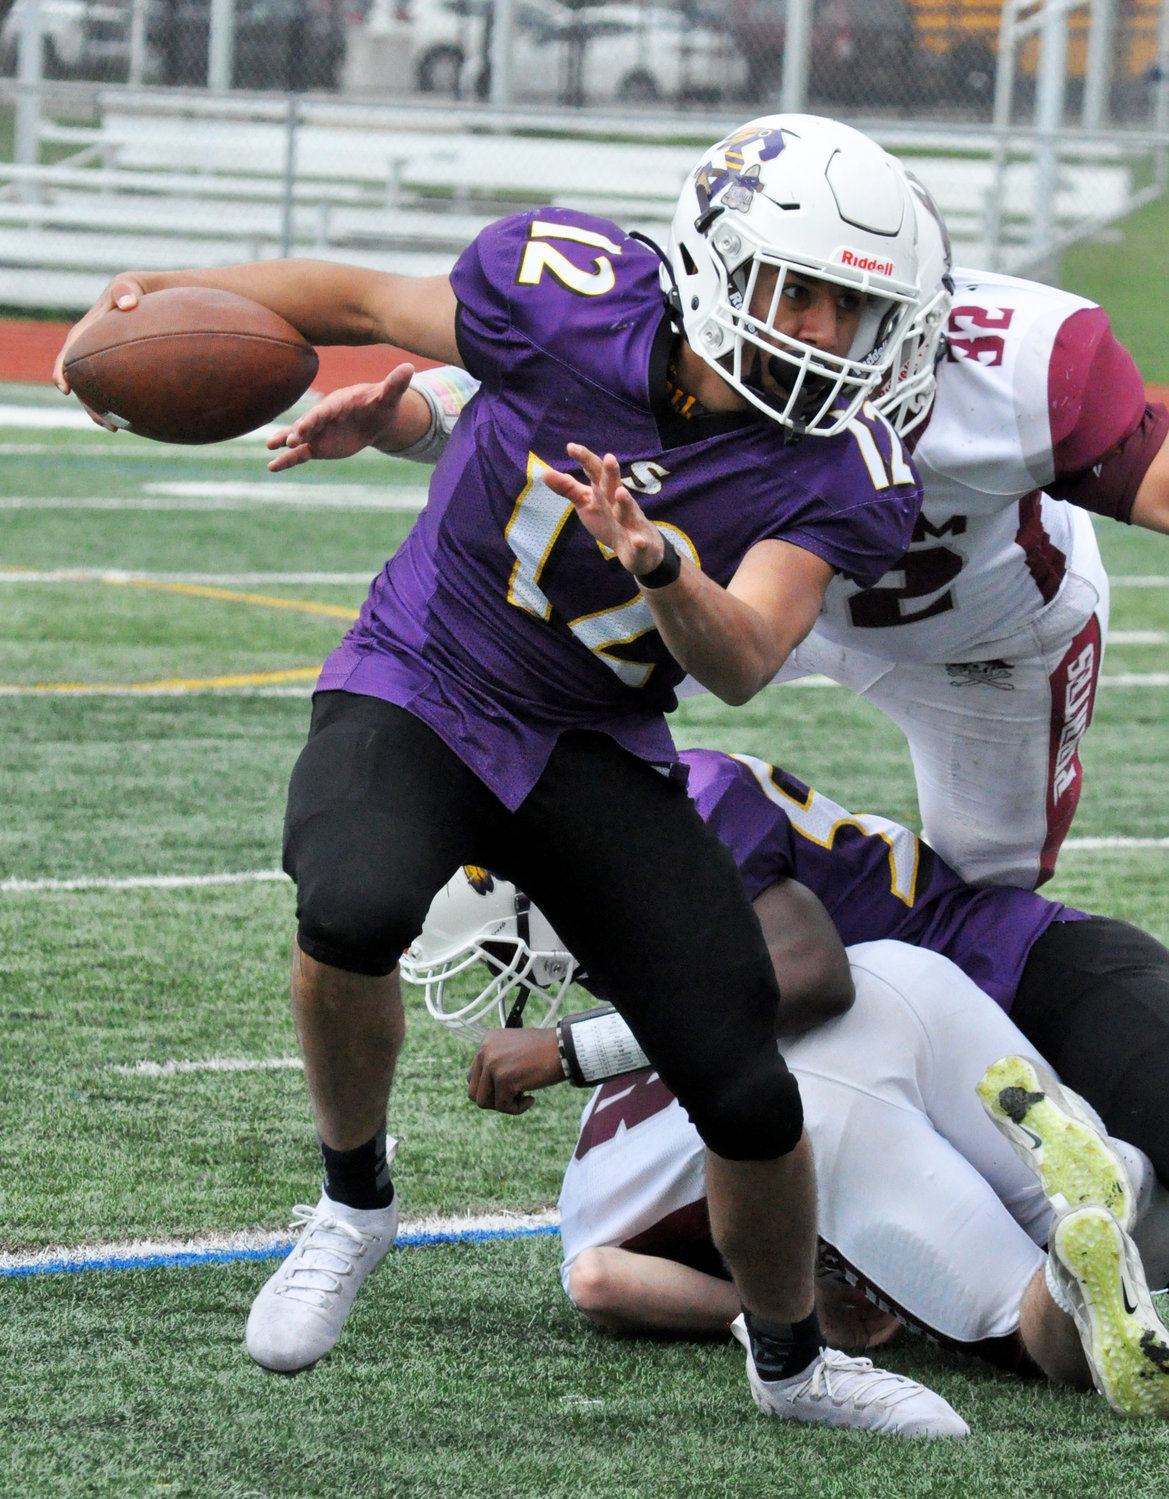 Senior quarterback Rahul Krishan passed for two touchdowns and ran for one to help Sewanhaka to a playoff-clinching 28-7 win over Mepham.